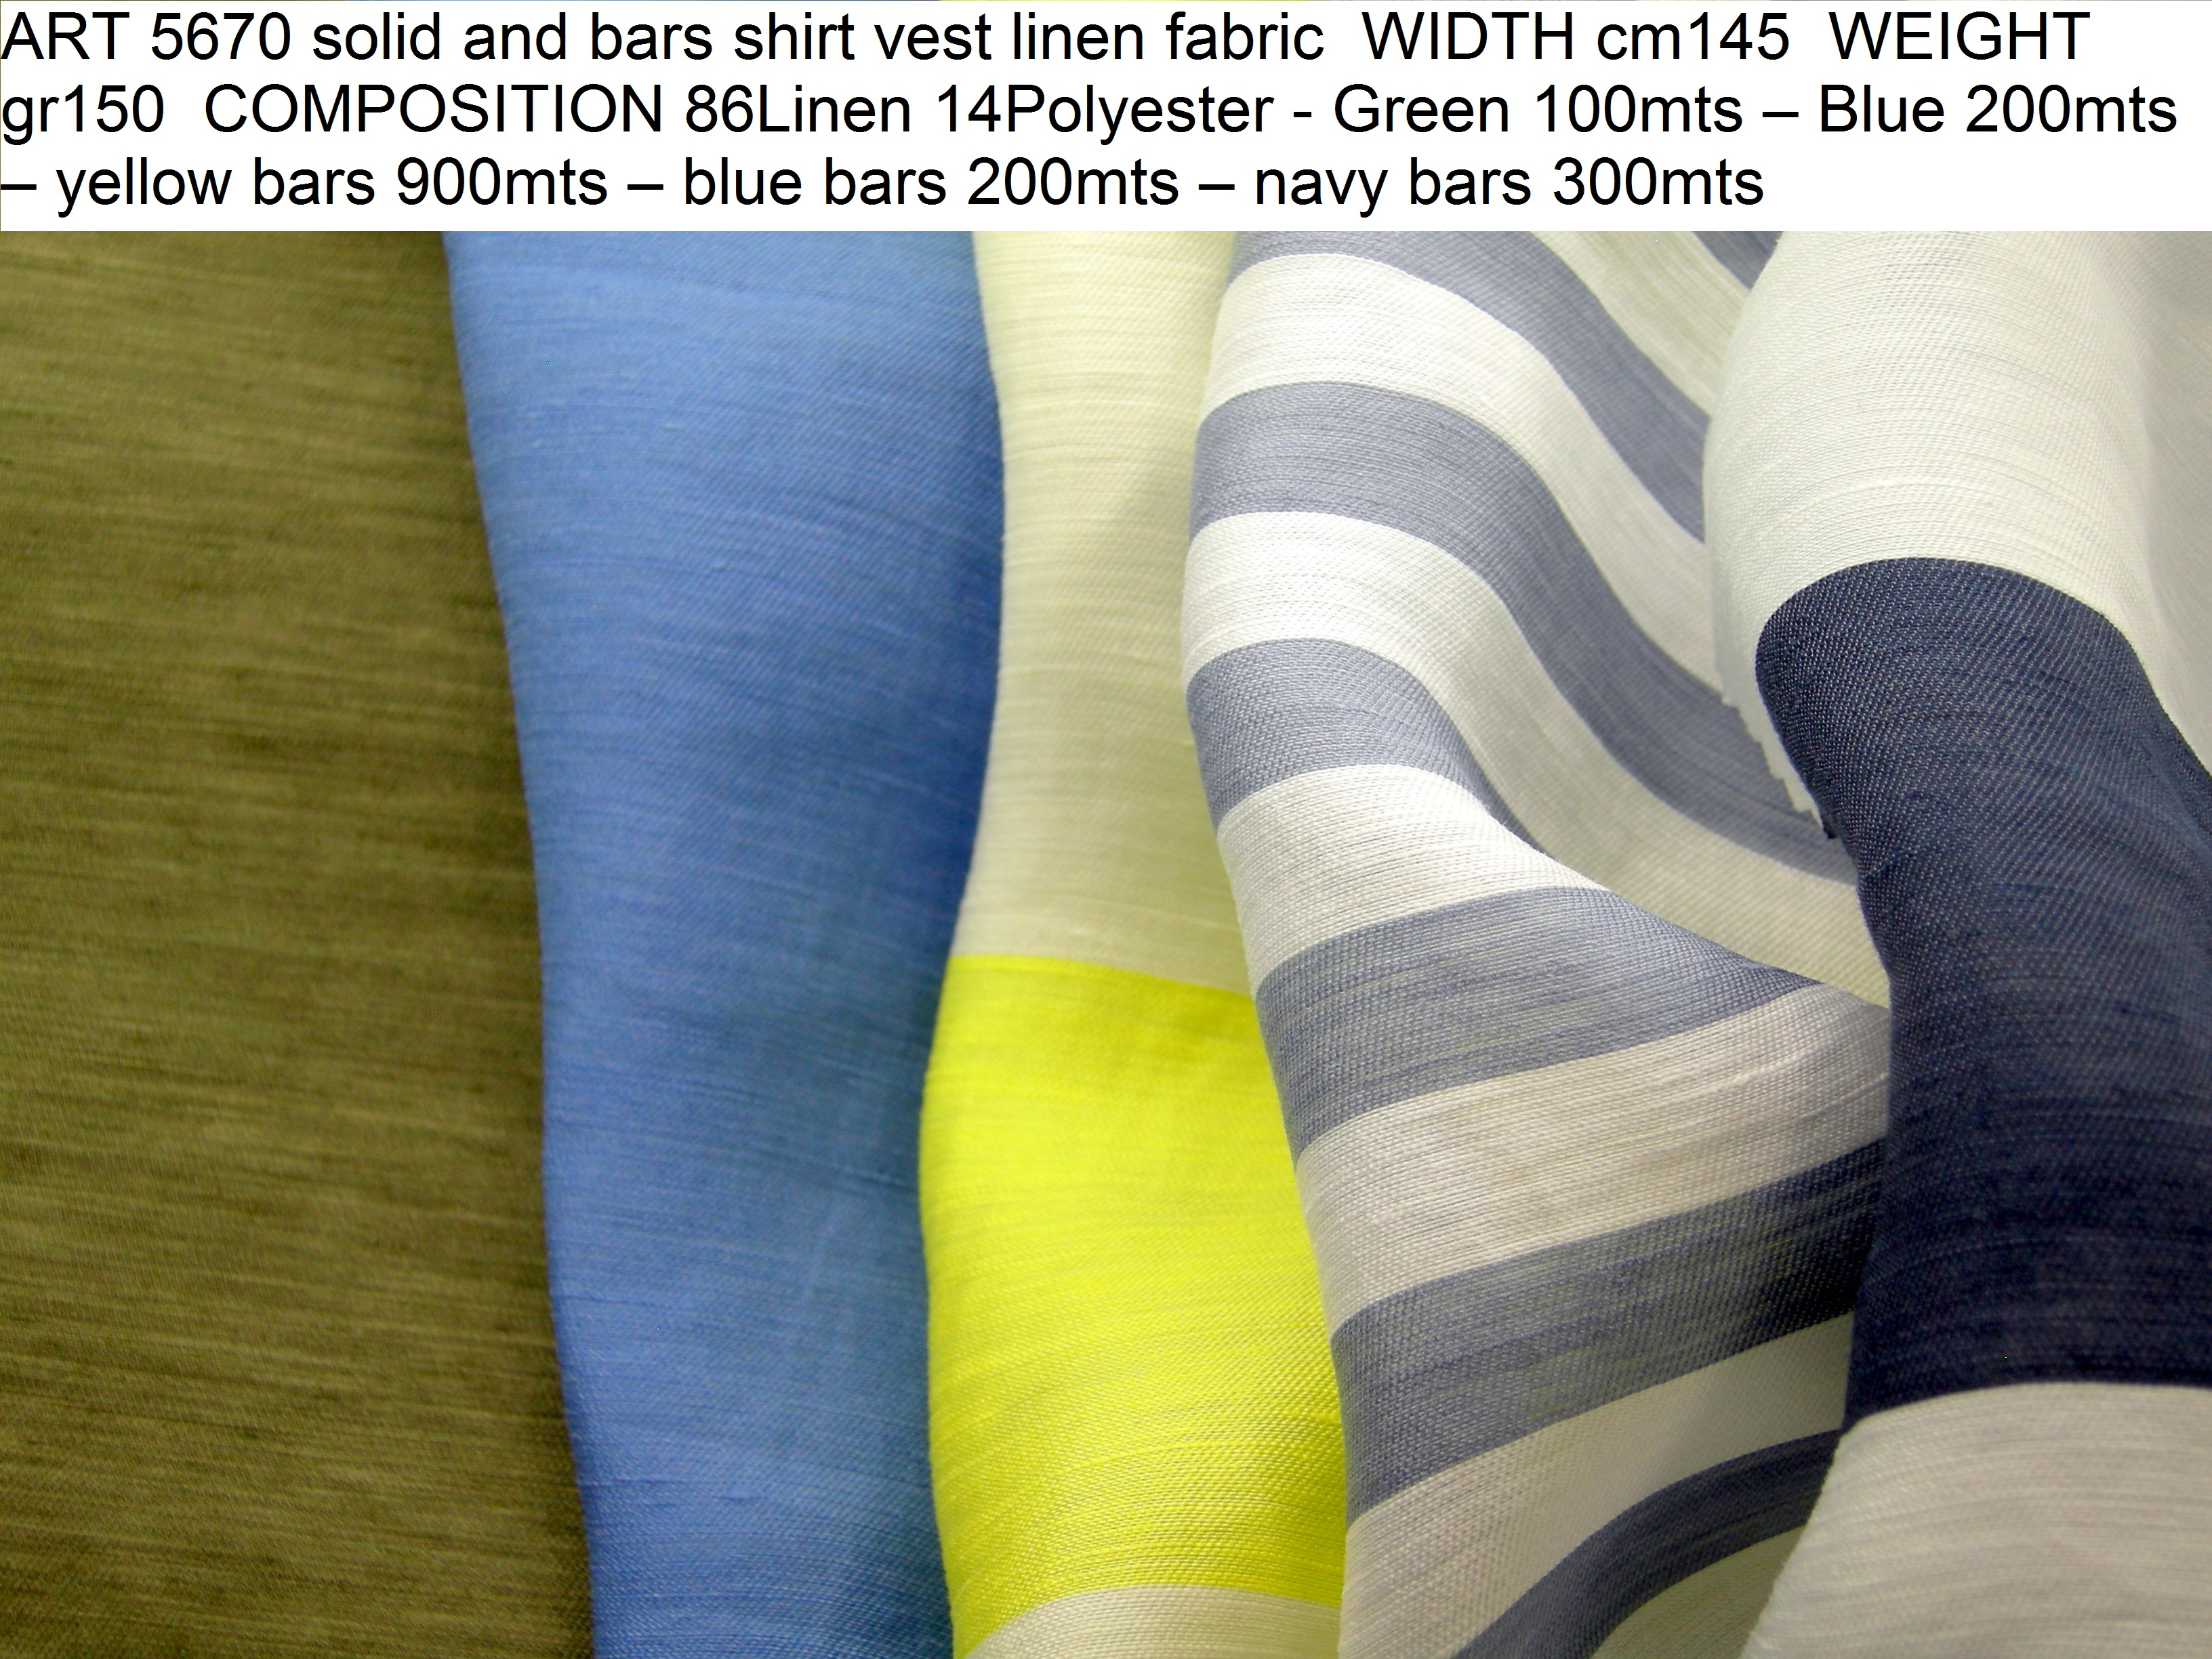 ART 5670 solid and bars shirt vest linen fabric WIDTH cm145 WEIGHT gr150 COMPOSITION 86Linen 14Polyester - Green 100mts – Blue 200mts – yellow bars 900mts – blue bars 200mts – navy bars 300mts